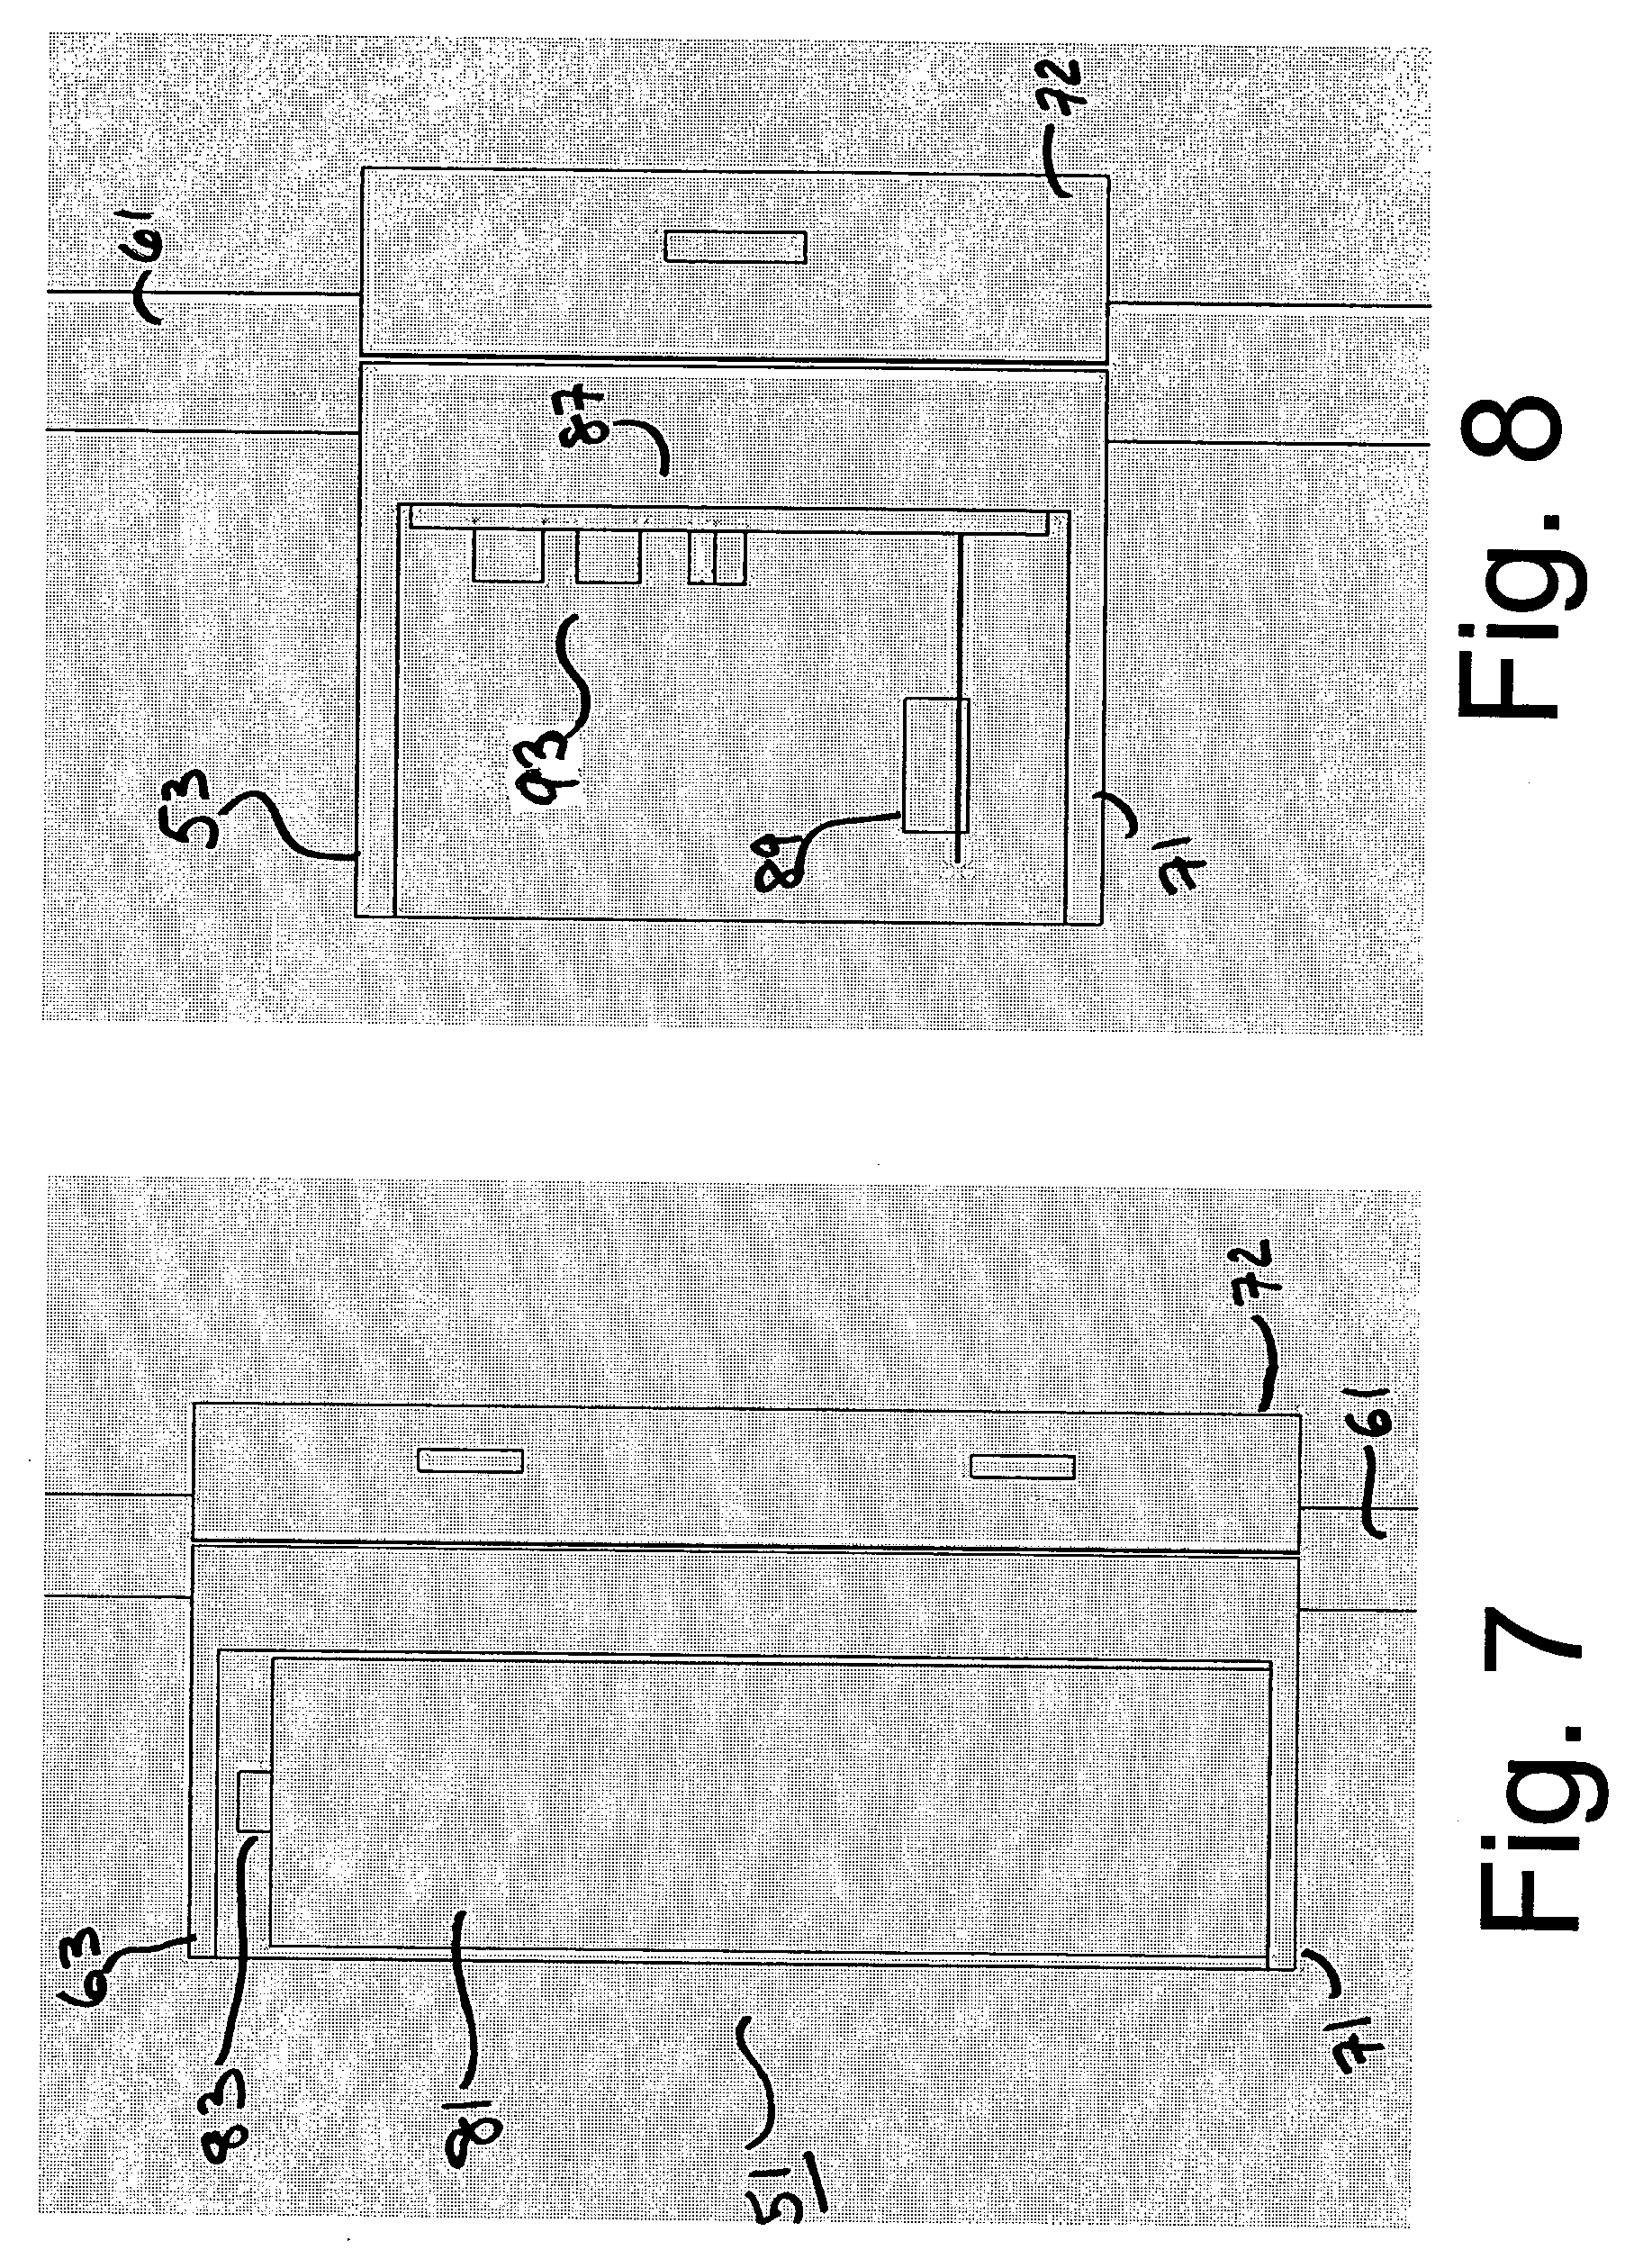 patent us20040099062 apparatus for testing aramid fiber elevator patent drawing